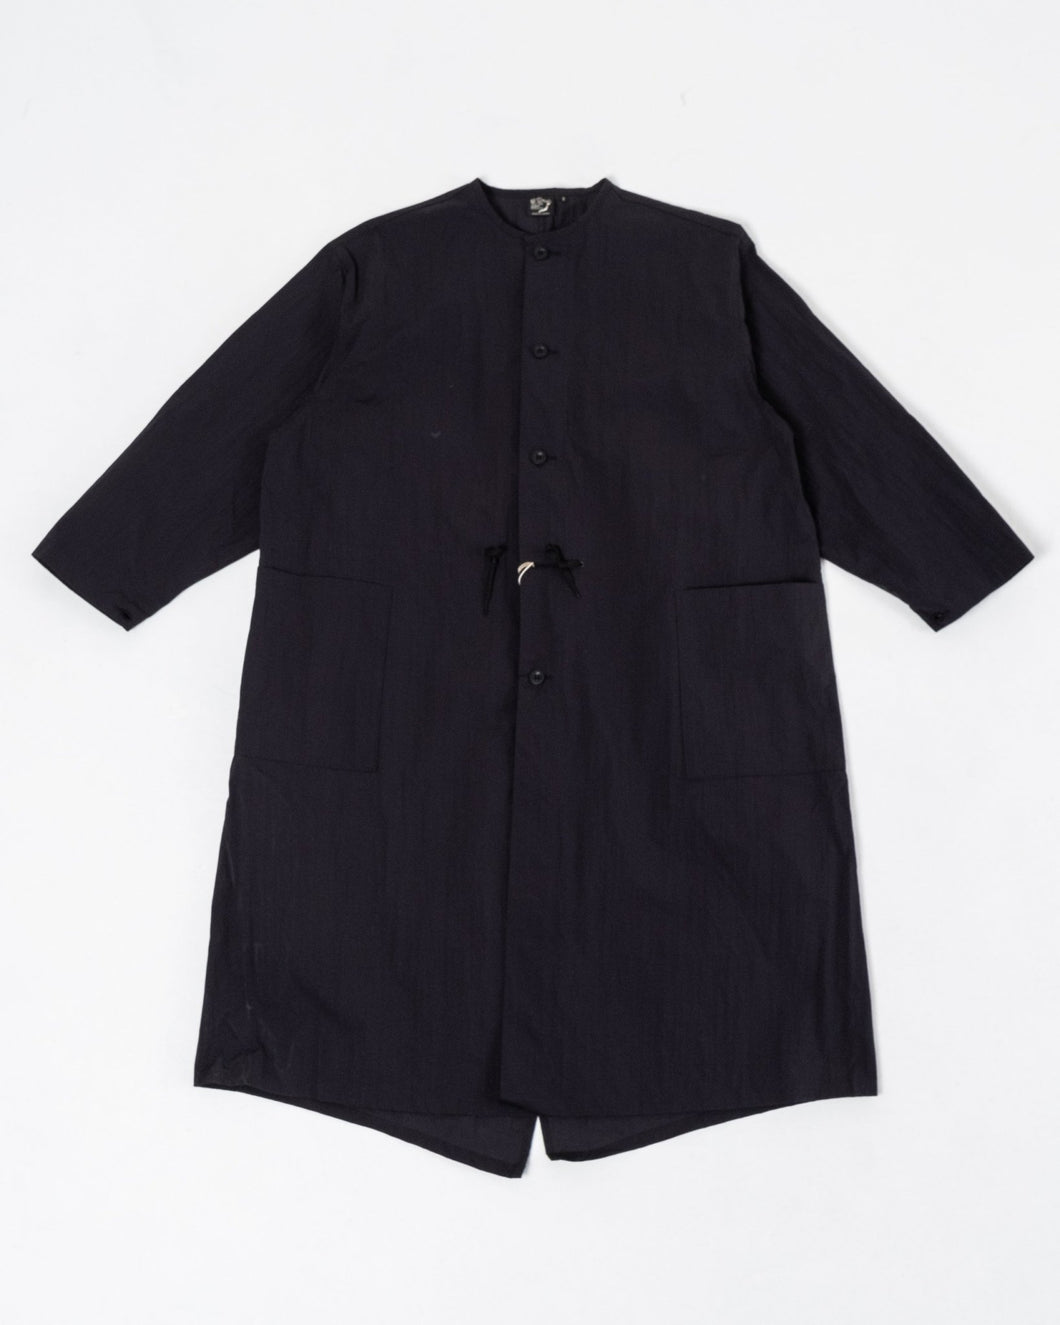 Black No Collar Coat - Meadow